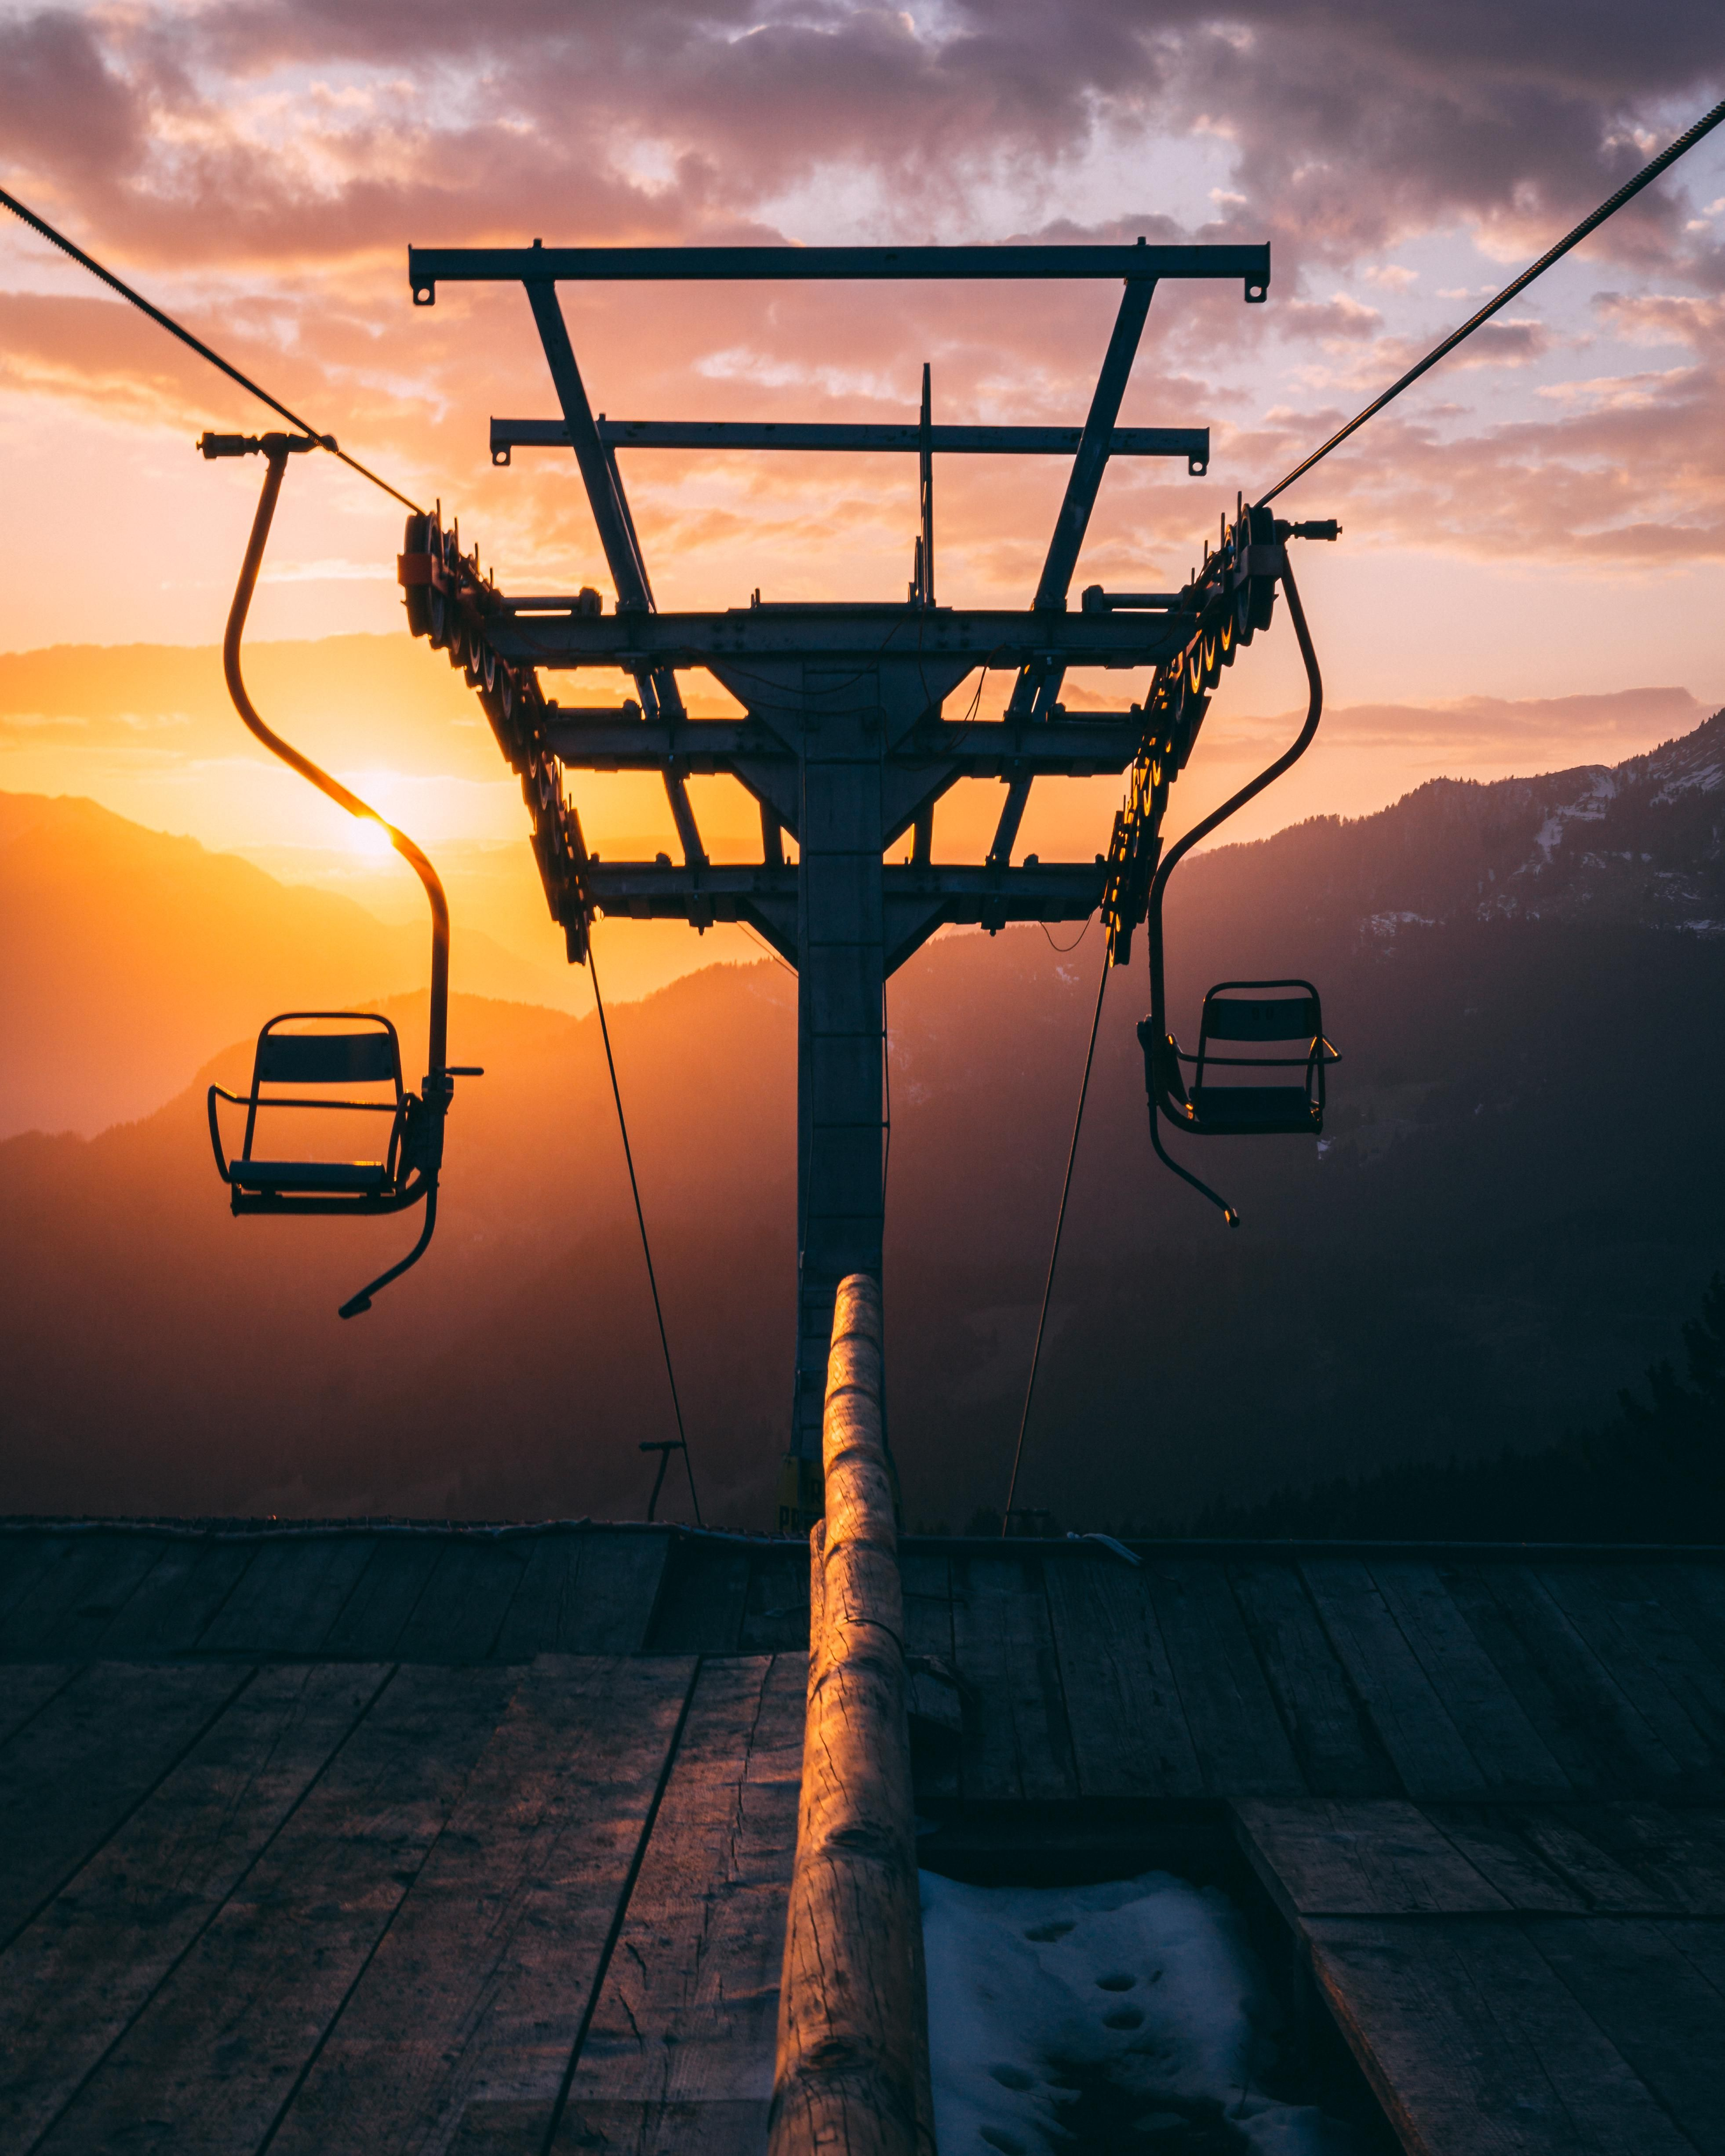 ITAP of a cable lift during sunset by Xickle . . . . #photos #amazingworld #world #amazingphotography #amateurphotography #photography #incrediblephotos